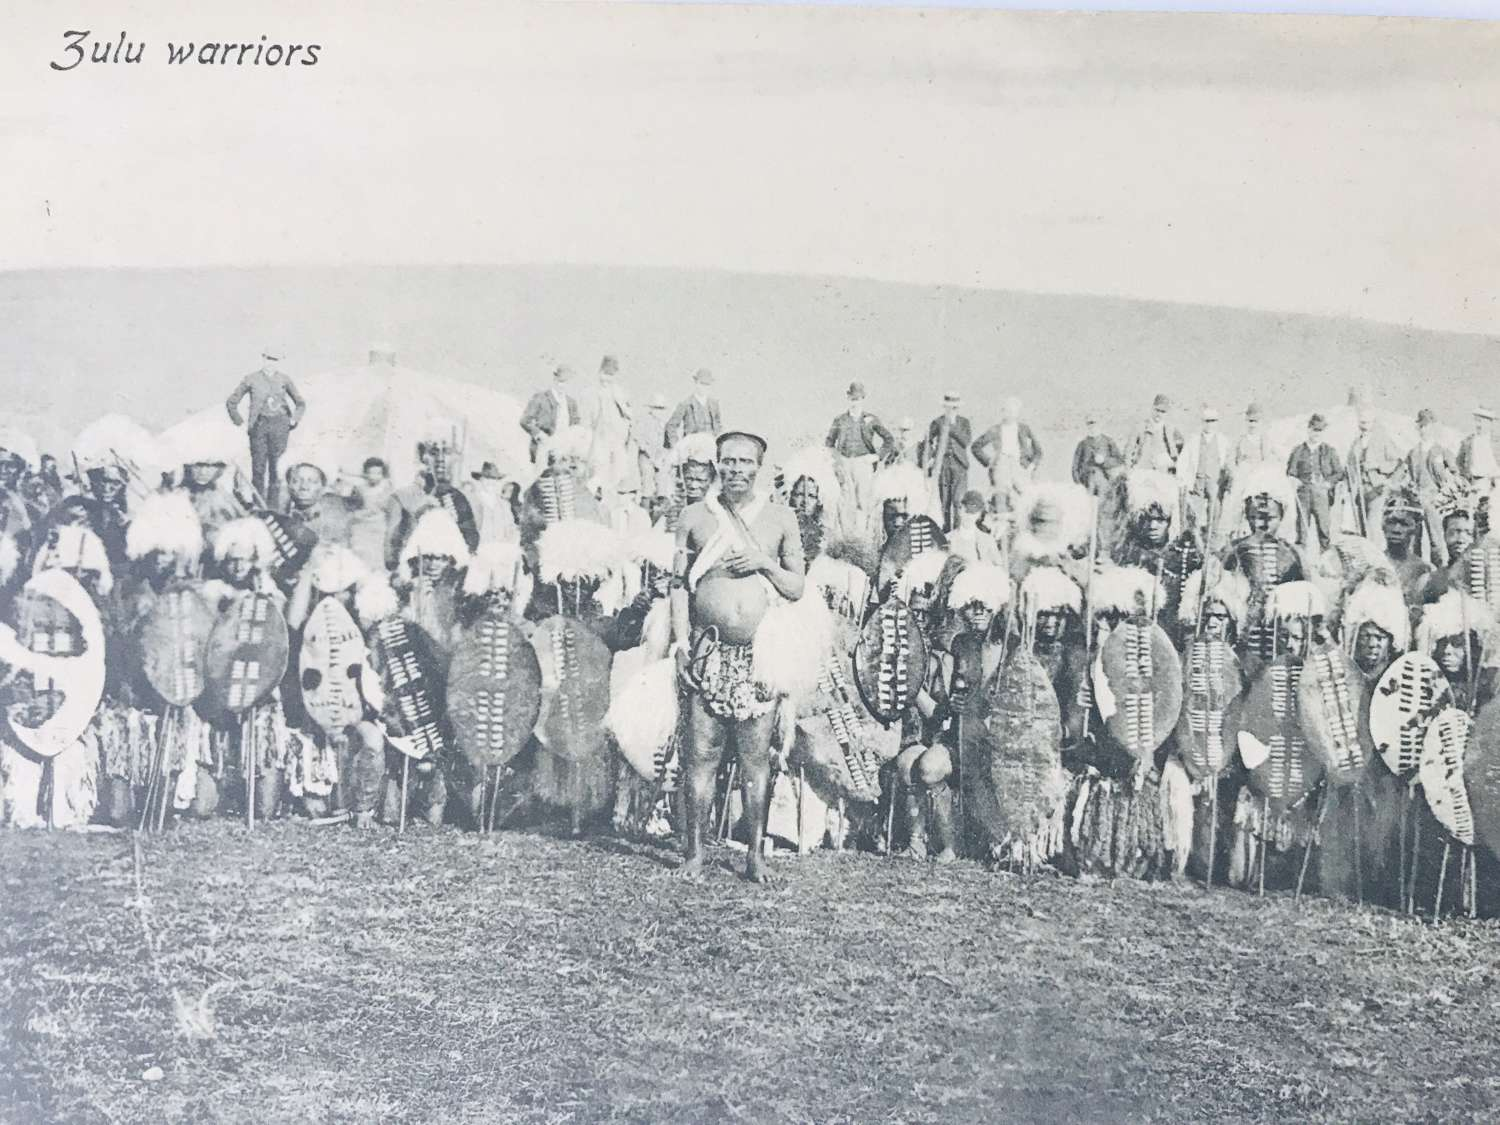 Early 20th century Zulu postcard